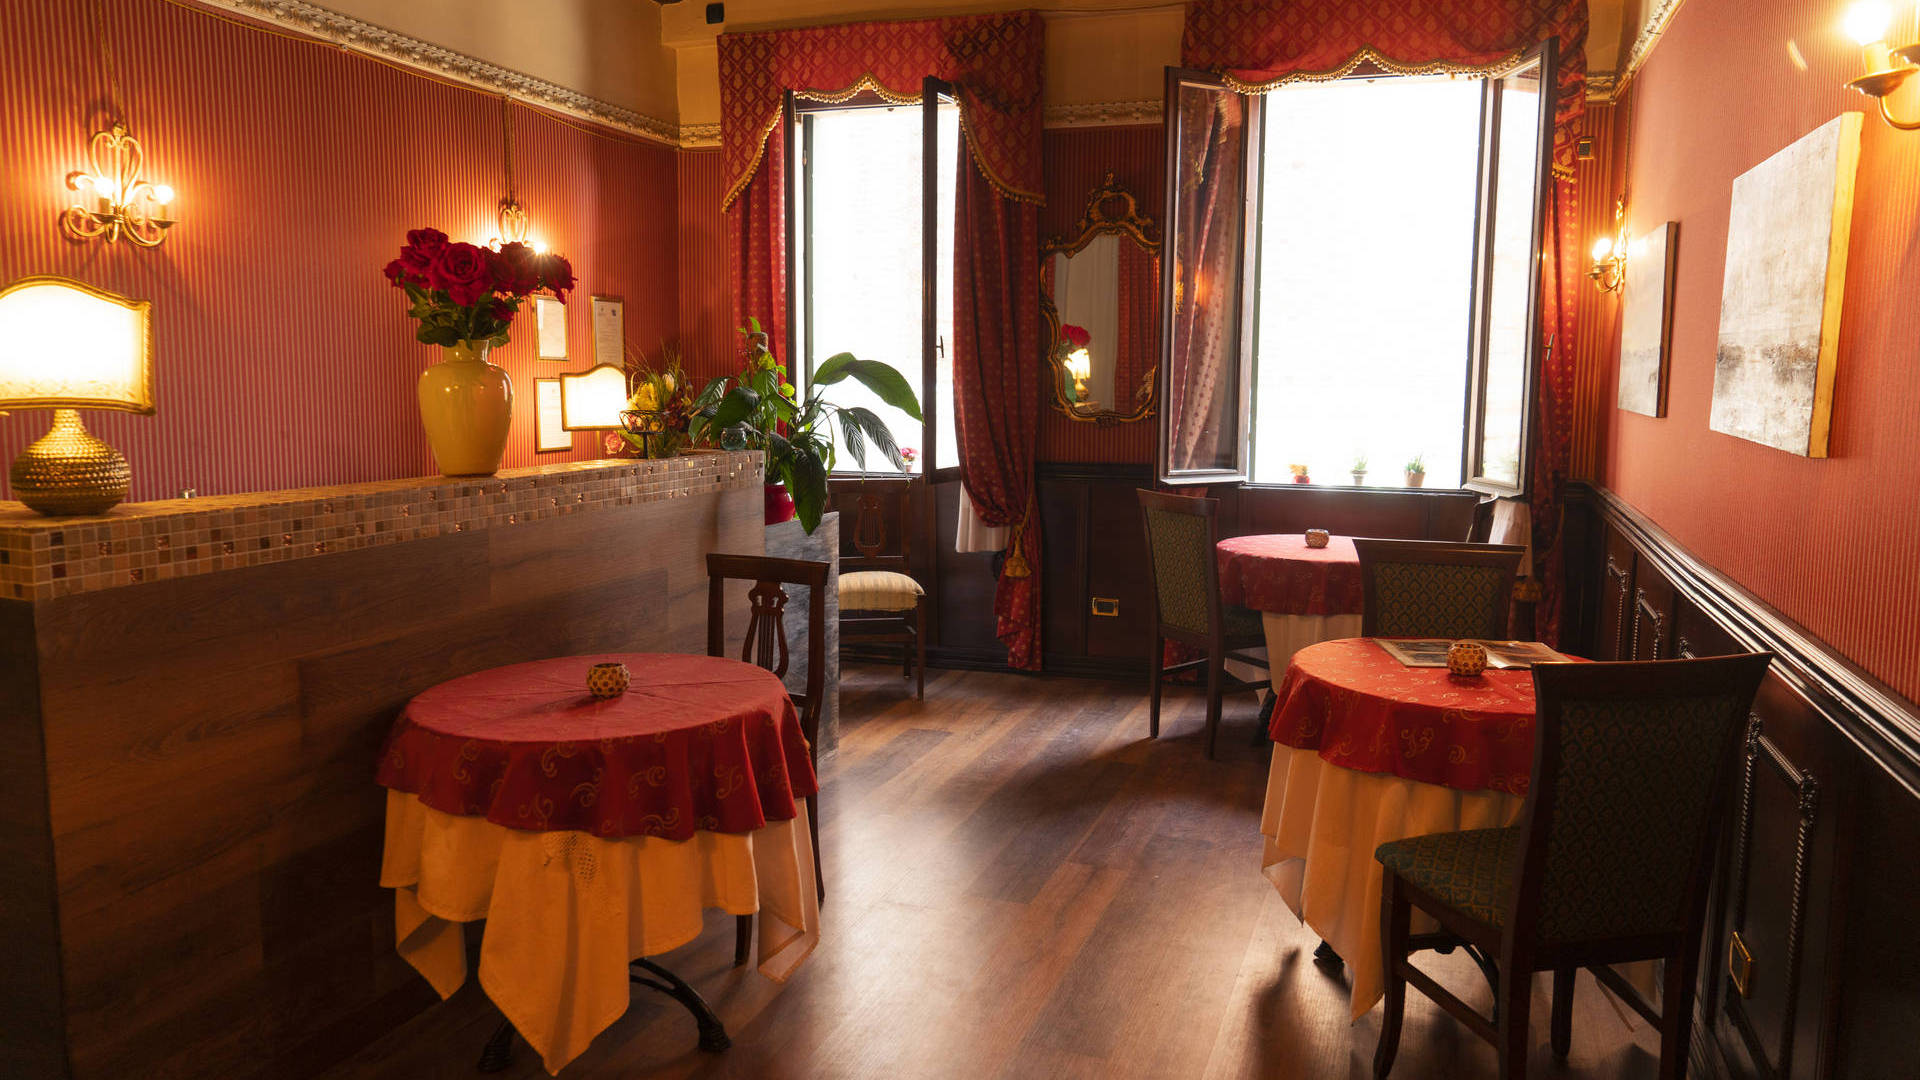 Ca' Morosini Inn in the Center of Venice